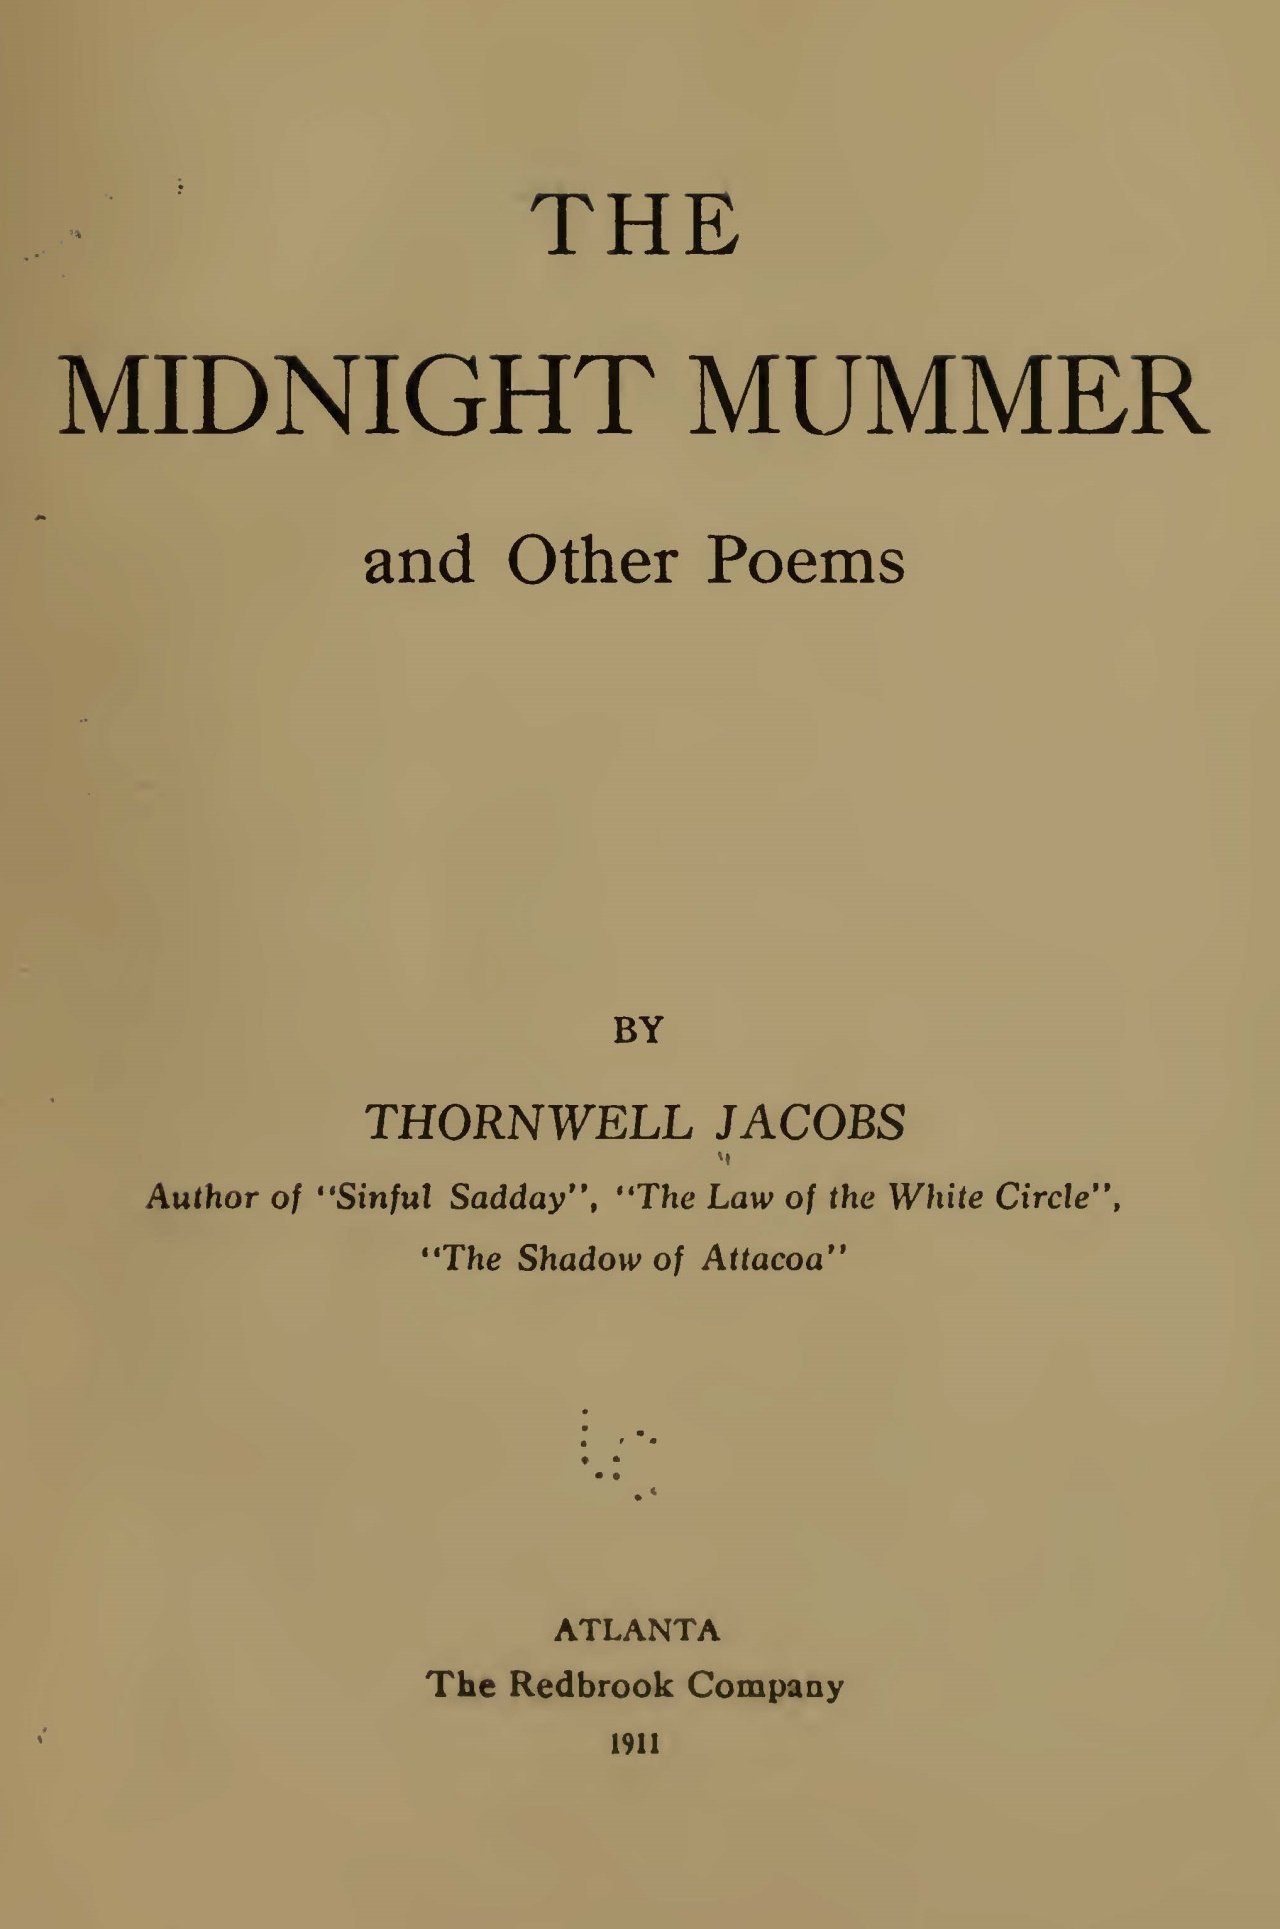 Jacobs, Thornwell, The Midnight Mummer Title Page.jpg